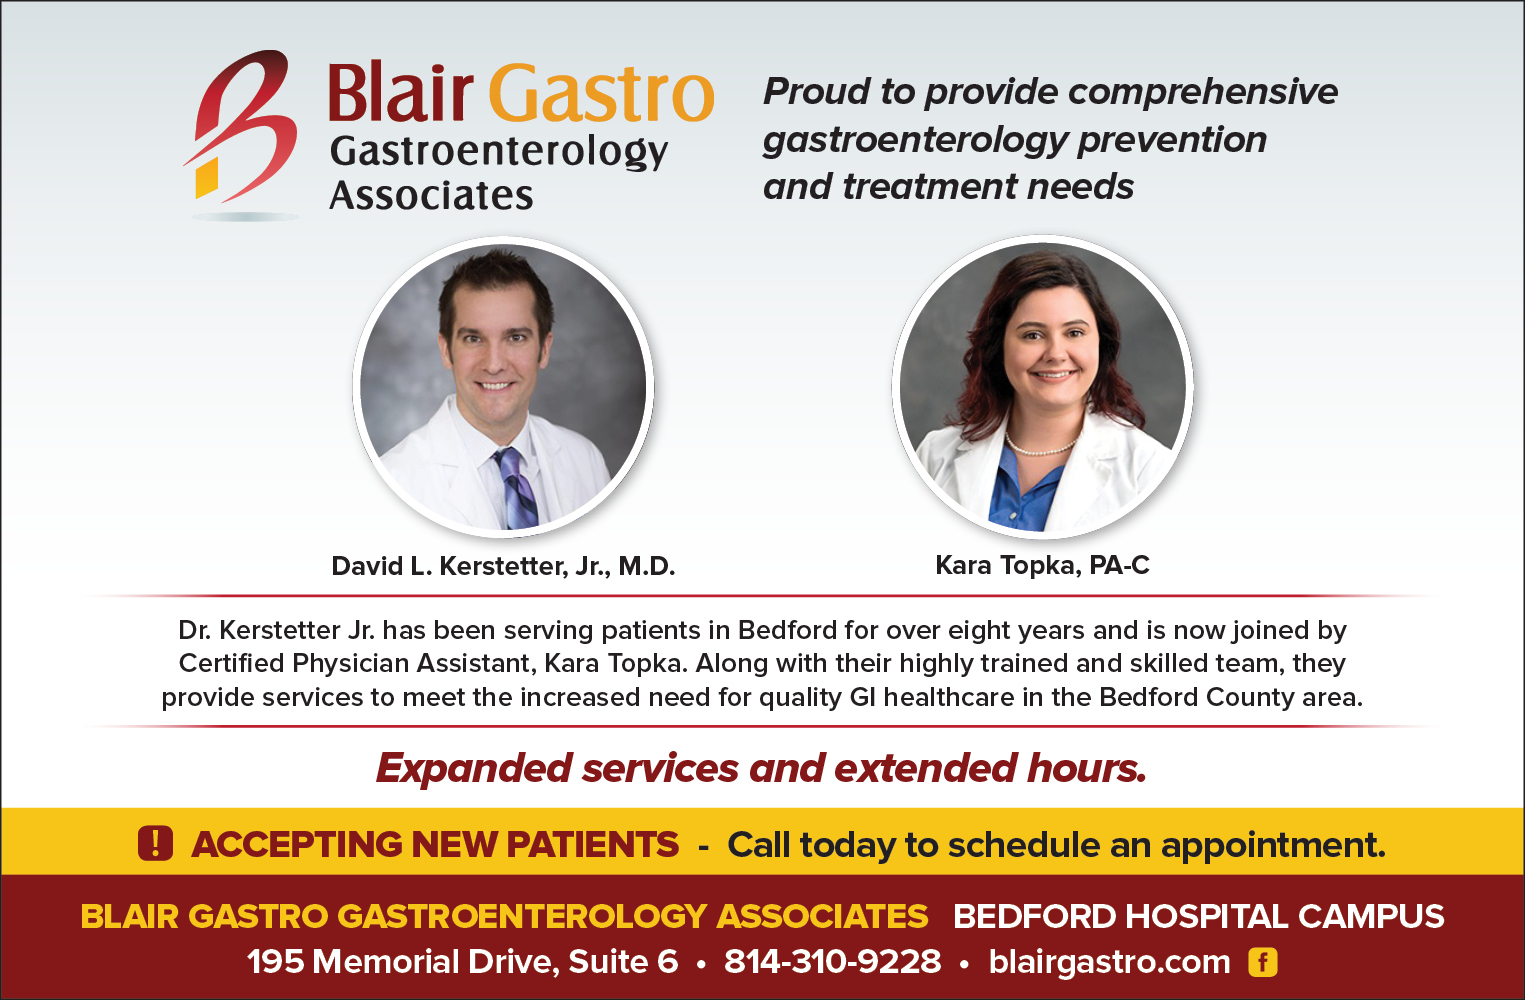 Dr. David Kerstetter, Jr. has been serving patients in Bedford for over eight years.